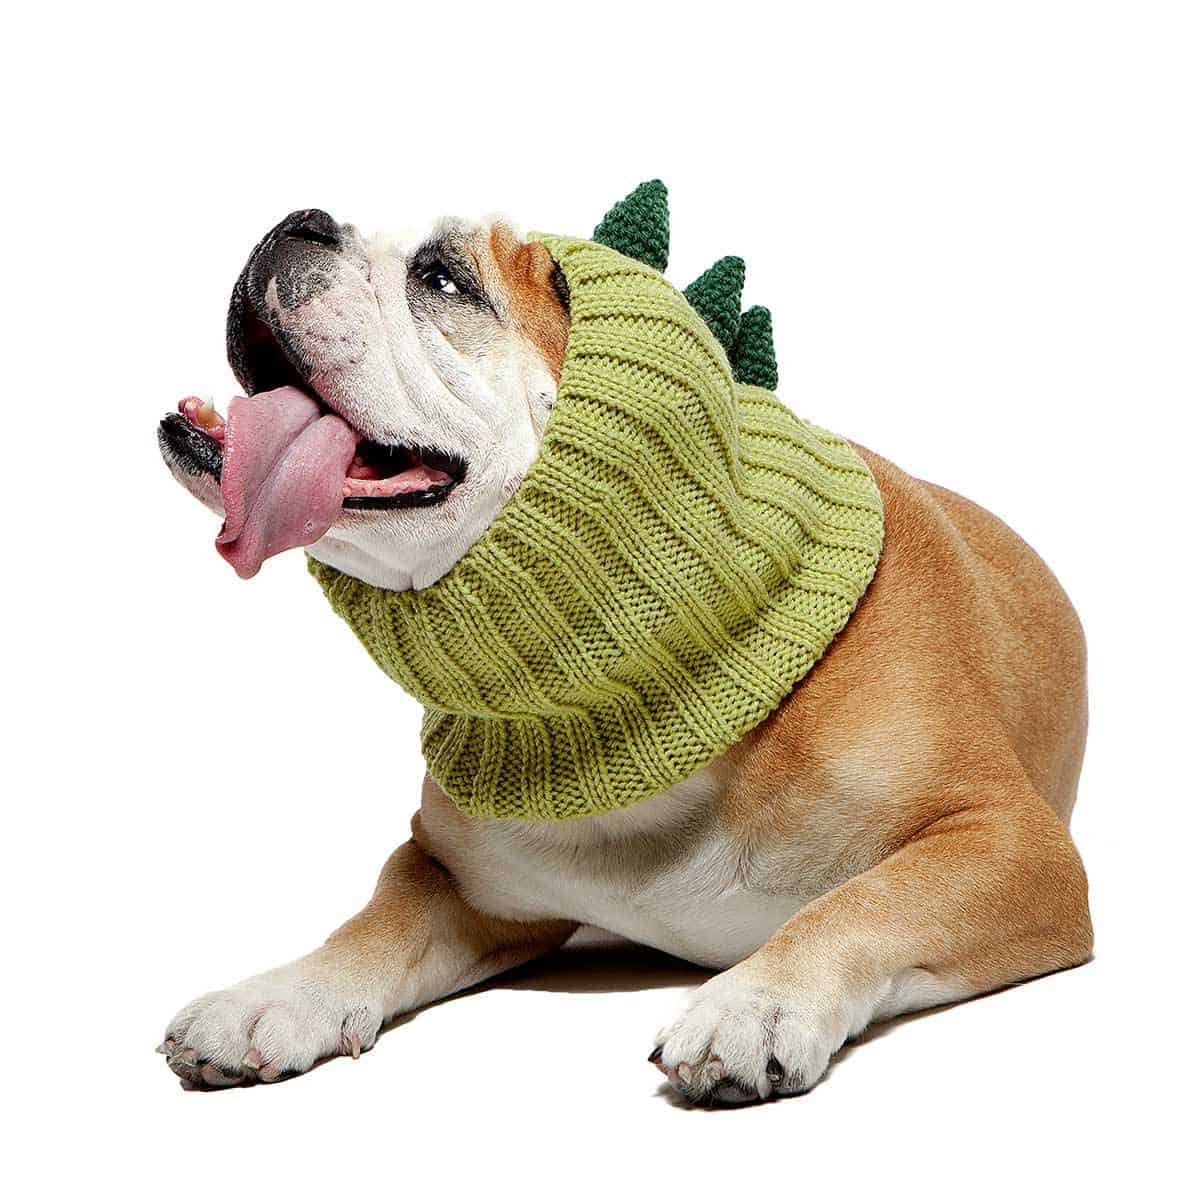 Bulldog wearing green crochet ear warmer dinosaur costume